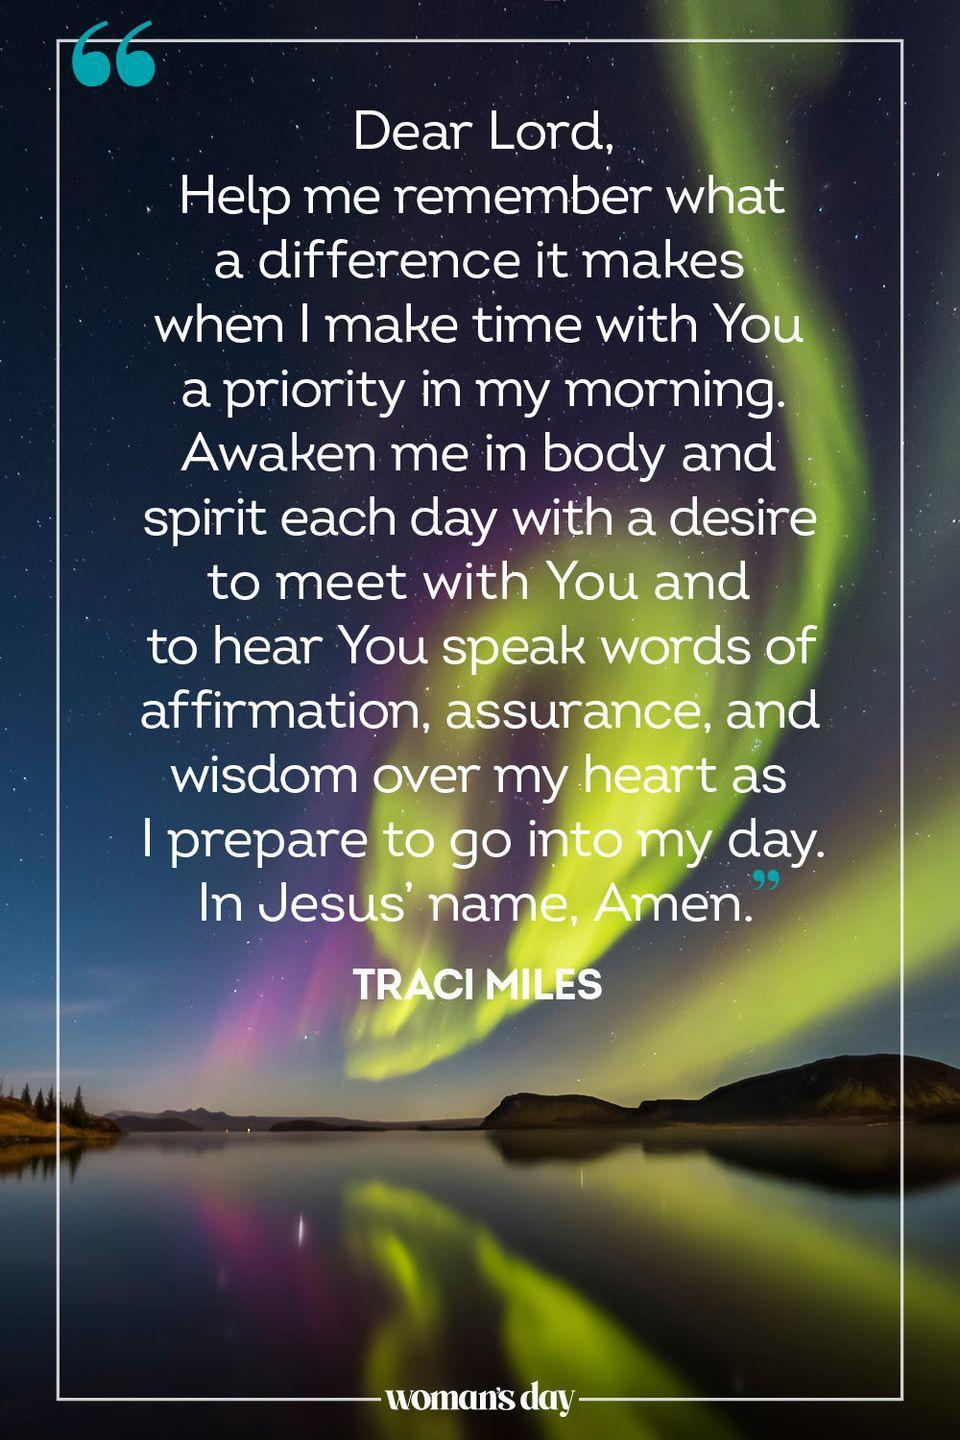 """<p>Dear Lord,</p><p>Help me remember what a difference it makes when I make time with You a priority in my morning. Awaken me in body and spirit each day with a desire to meet with You and to hear You speak words of affirmation, assurance, and wisdom over my heart as I prepare to go into my day. </p><p>In Jesus' name, Amen. </p><p>— <a href=""""https://www.lightbook.org/en/morning-prayer-start-day-god-joy-happiness-music-lyrics.html"""" rel=""""nofollow noopener"""" target=""""_blank"""" data-ylk=""""slk:Traci Miles"""" class=""""link rapid-noclick-resp"""">Traci Miles</a></p>"""